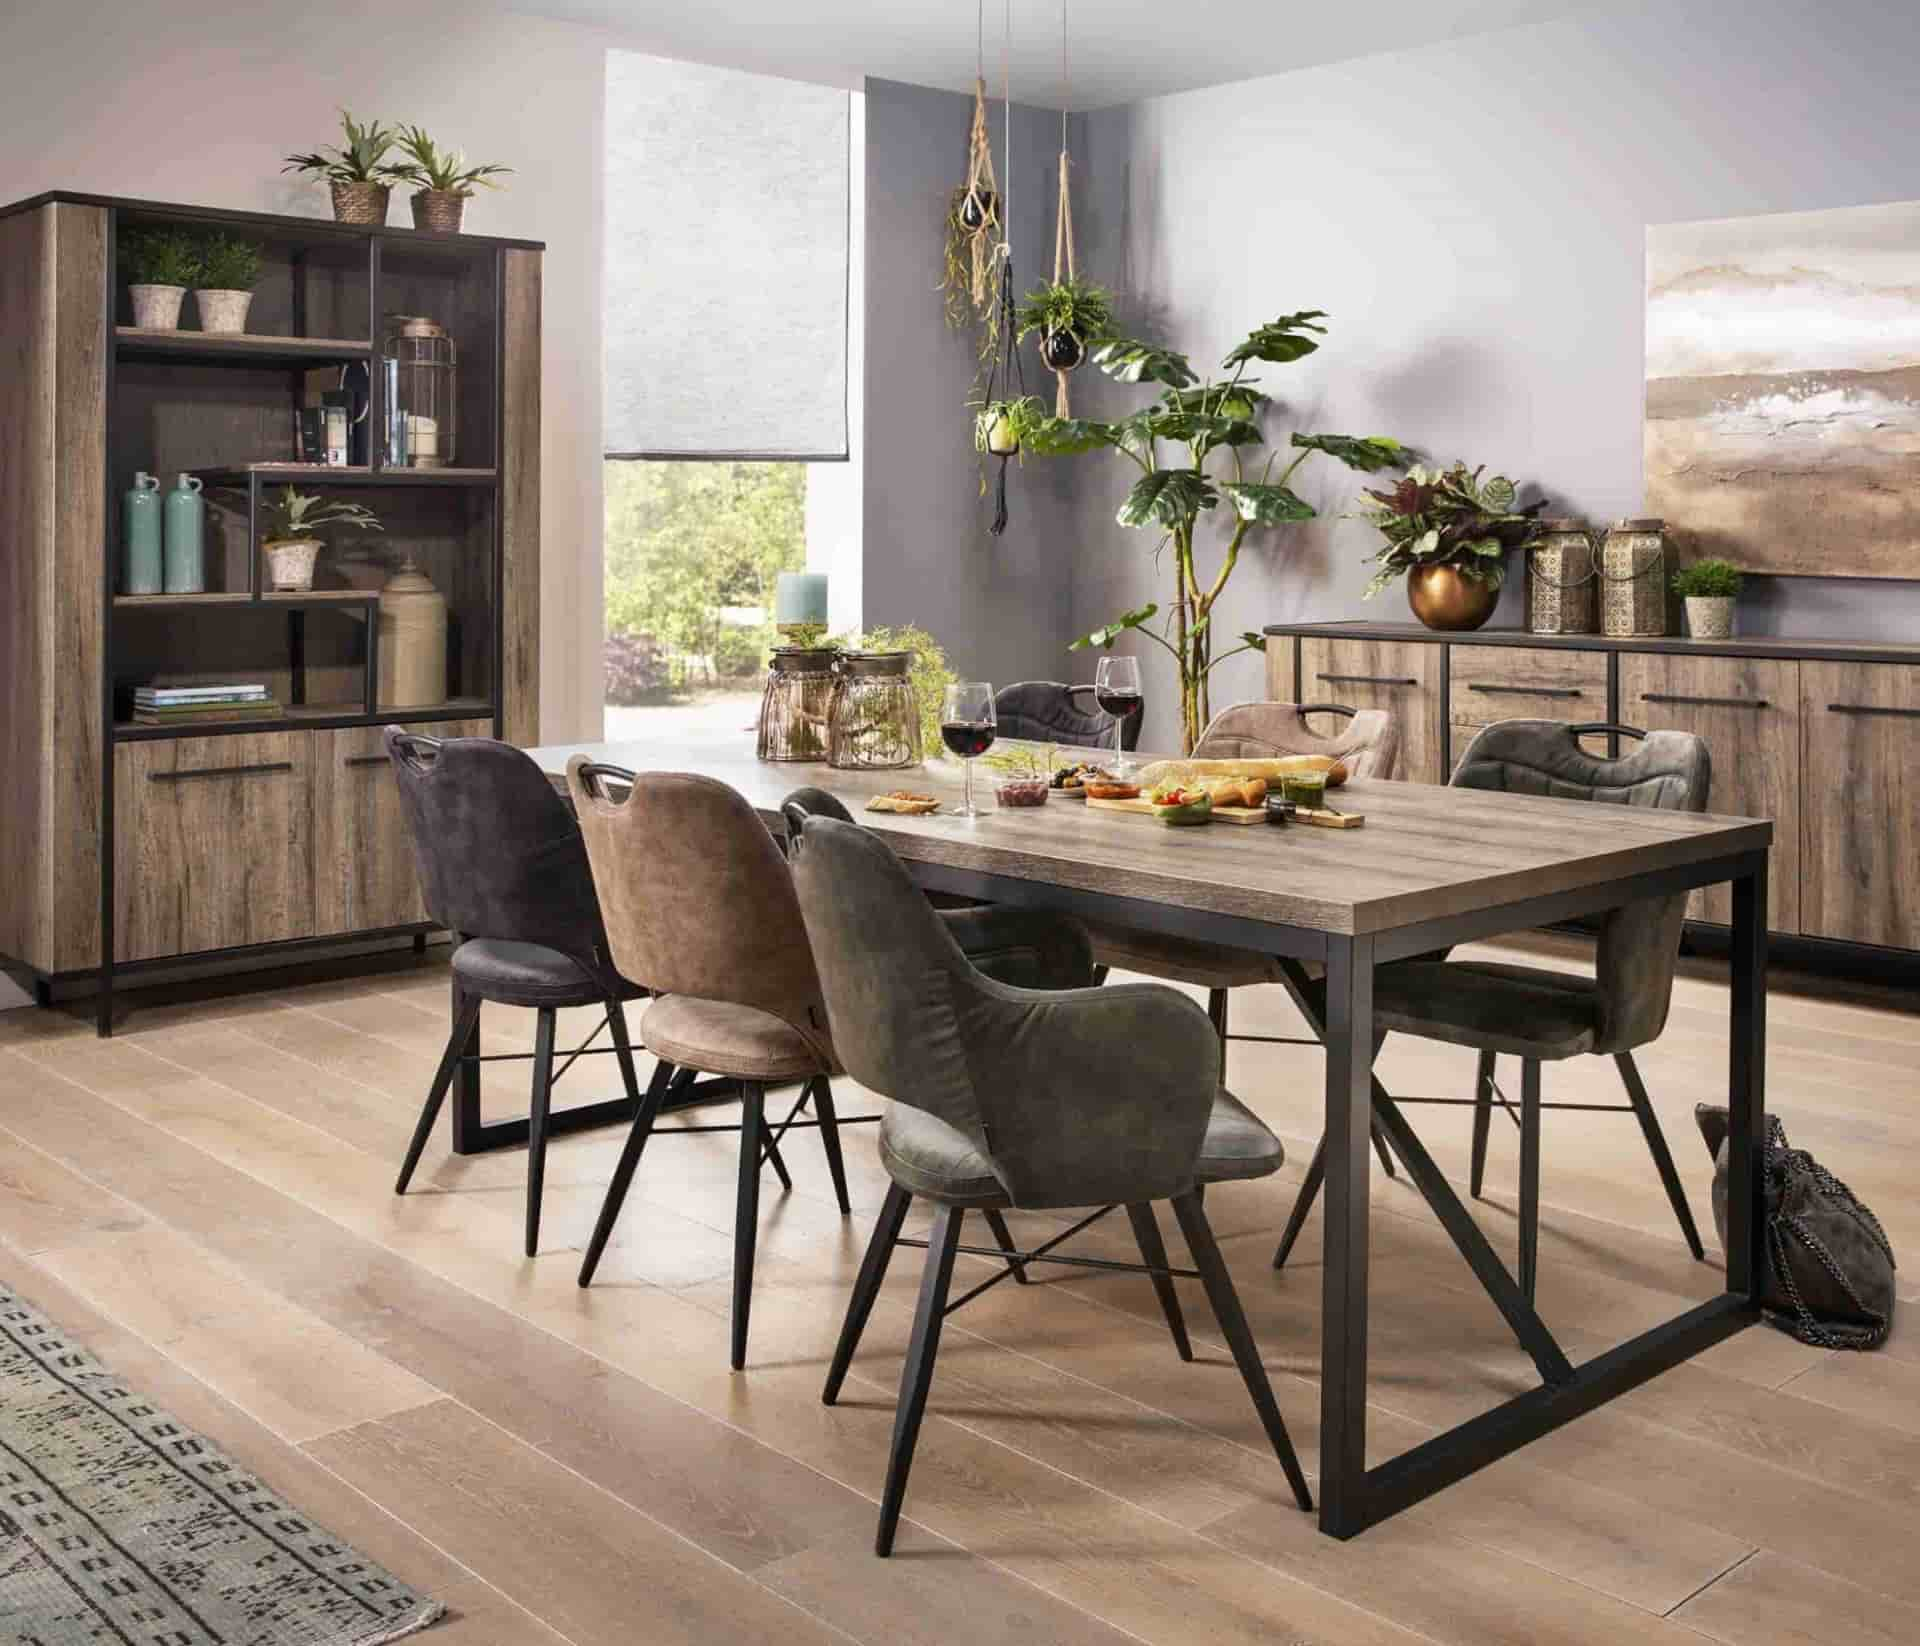 Wooden furniture on a wooden floor? This allows you to combine it!